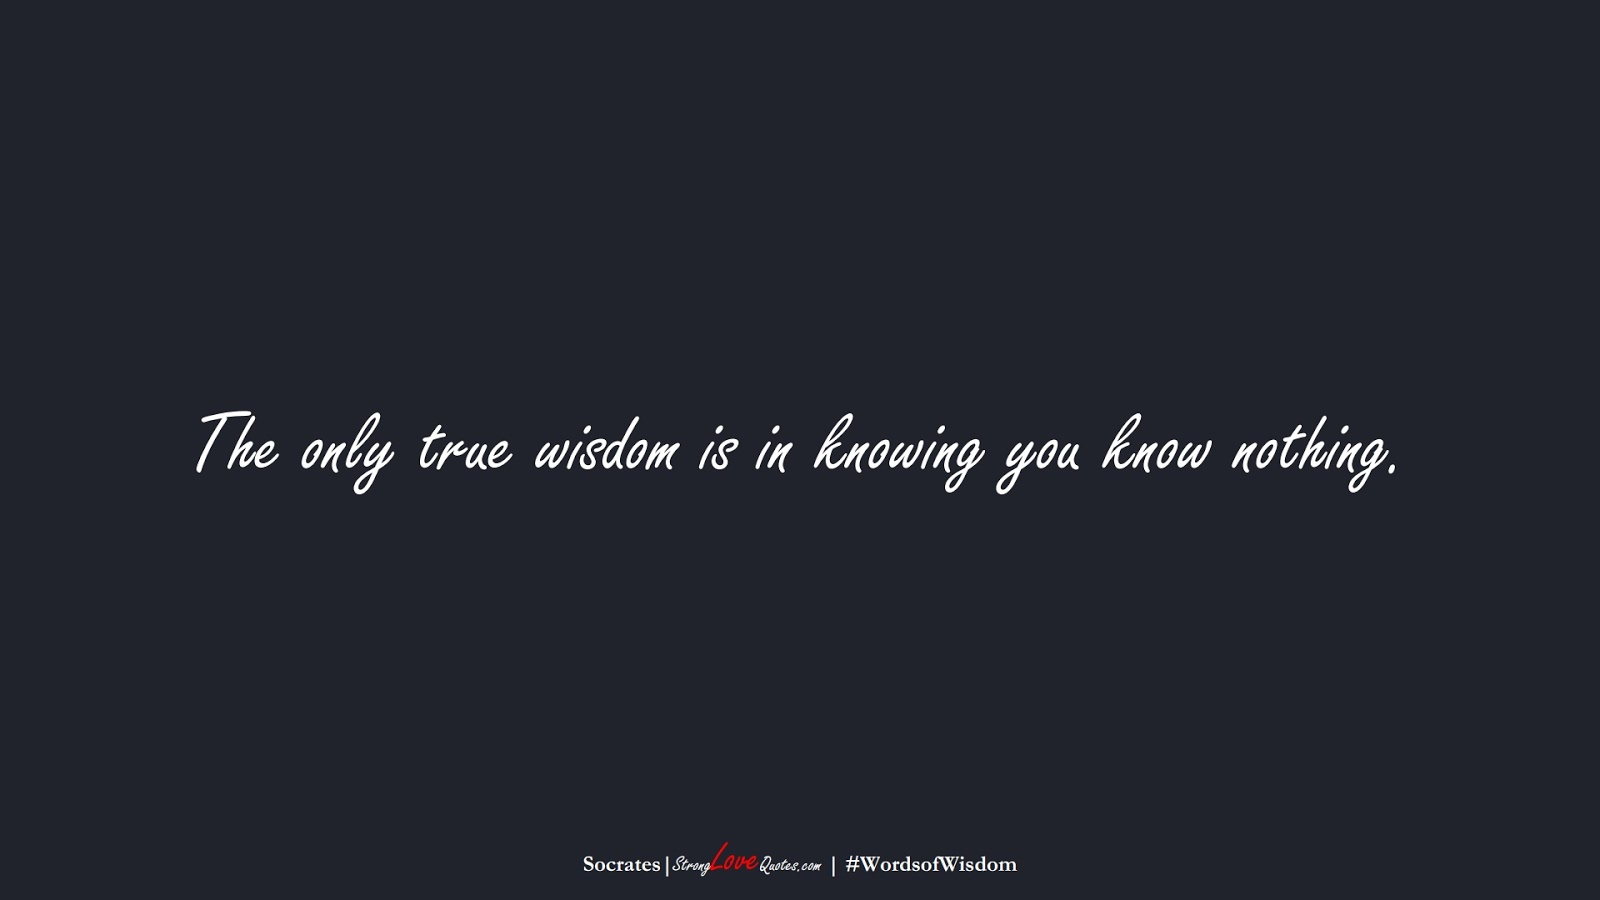 The only true wisdom is in knowing you know nothing. (Socrates);  #WordsofWisdom